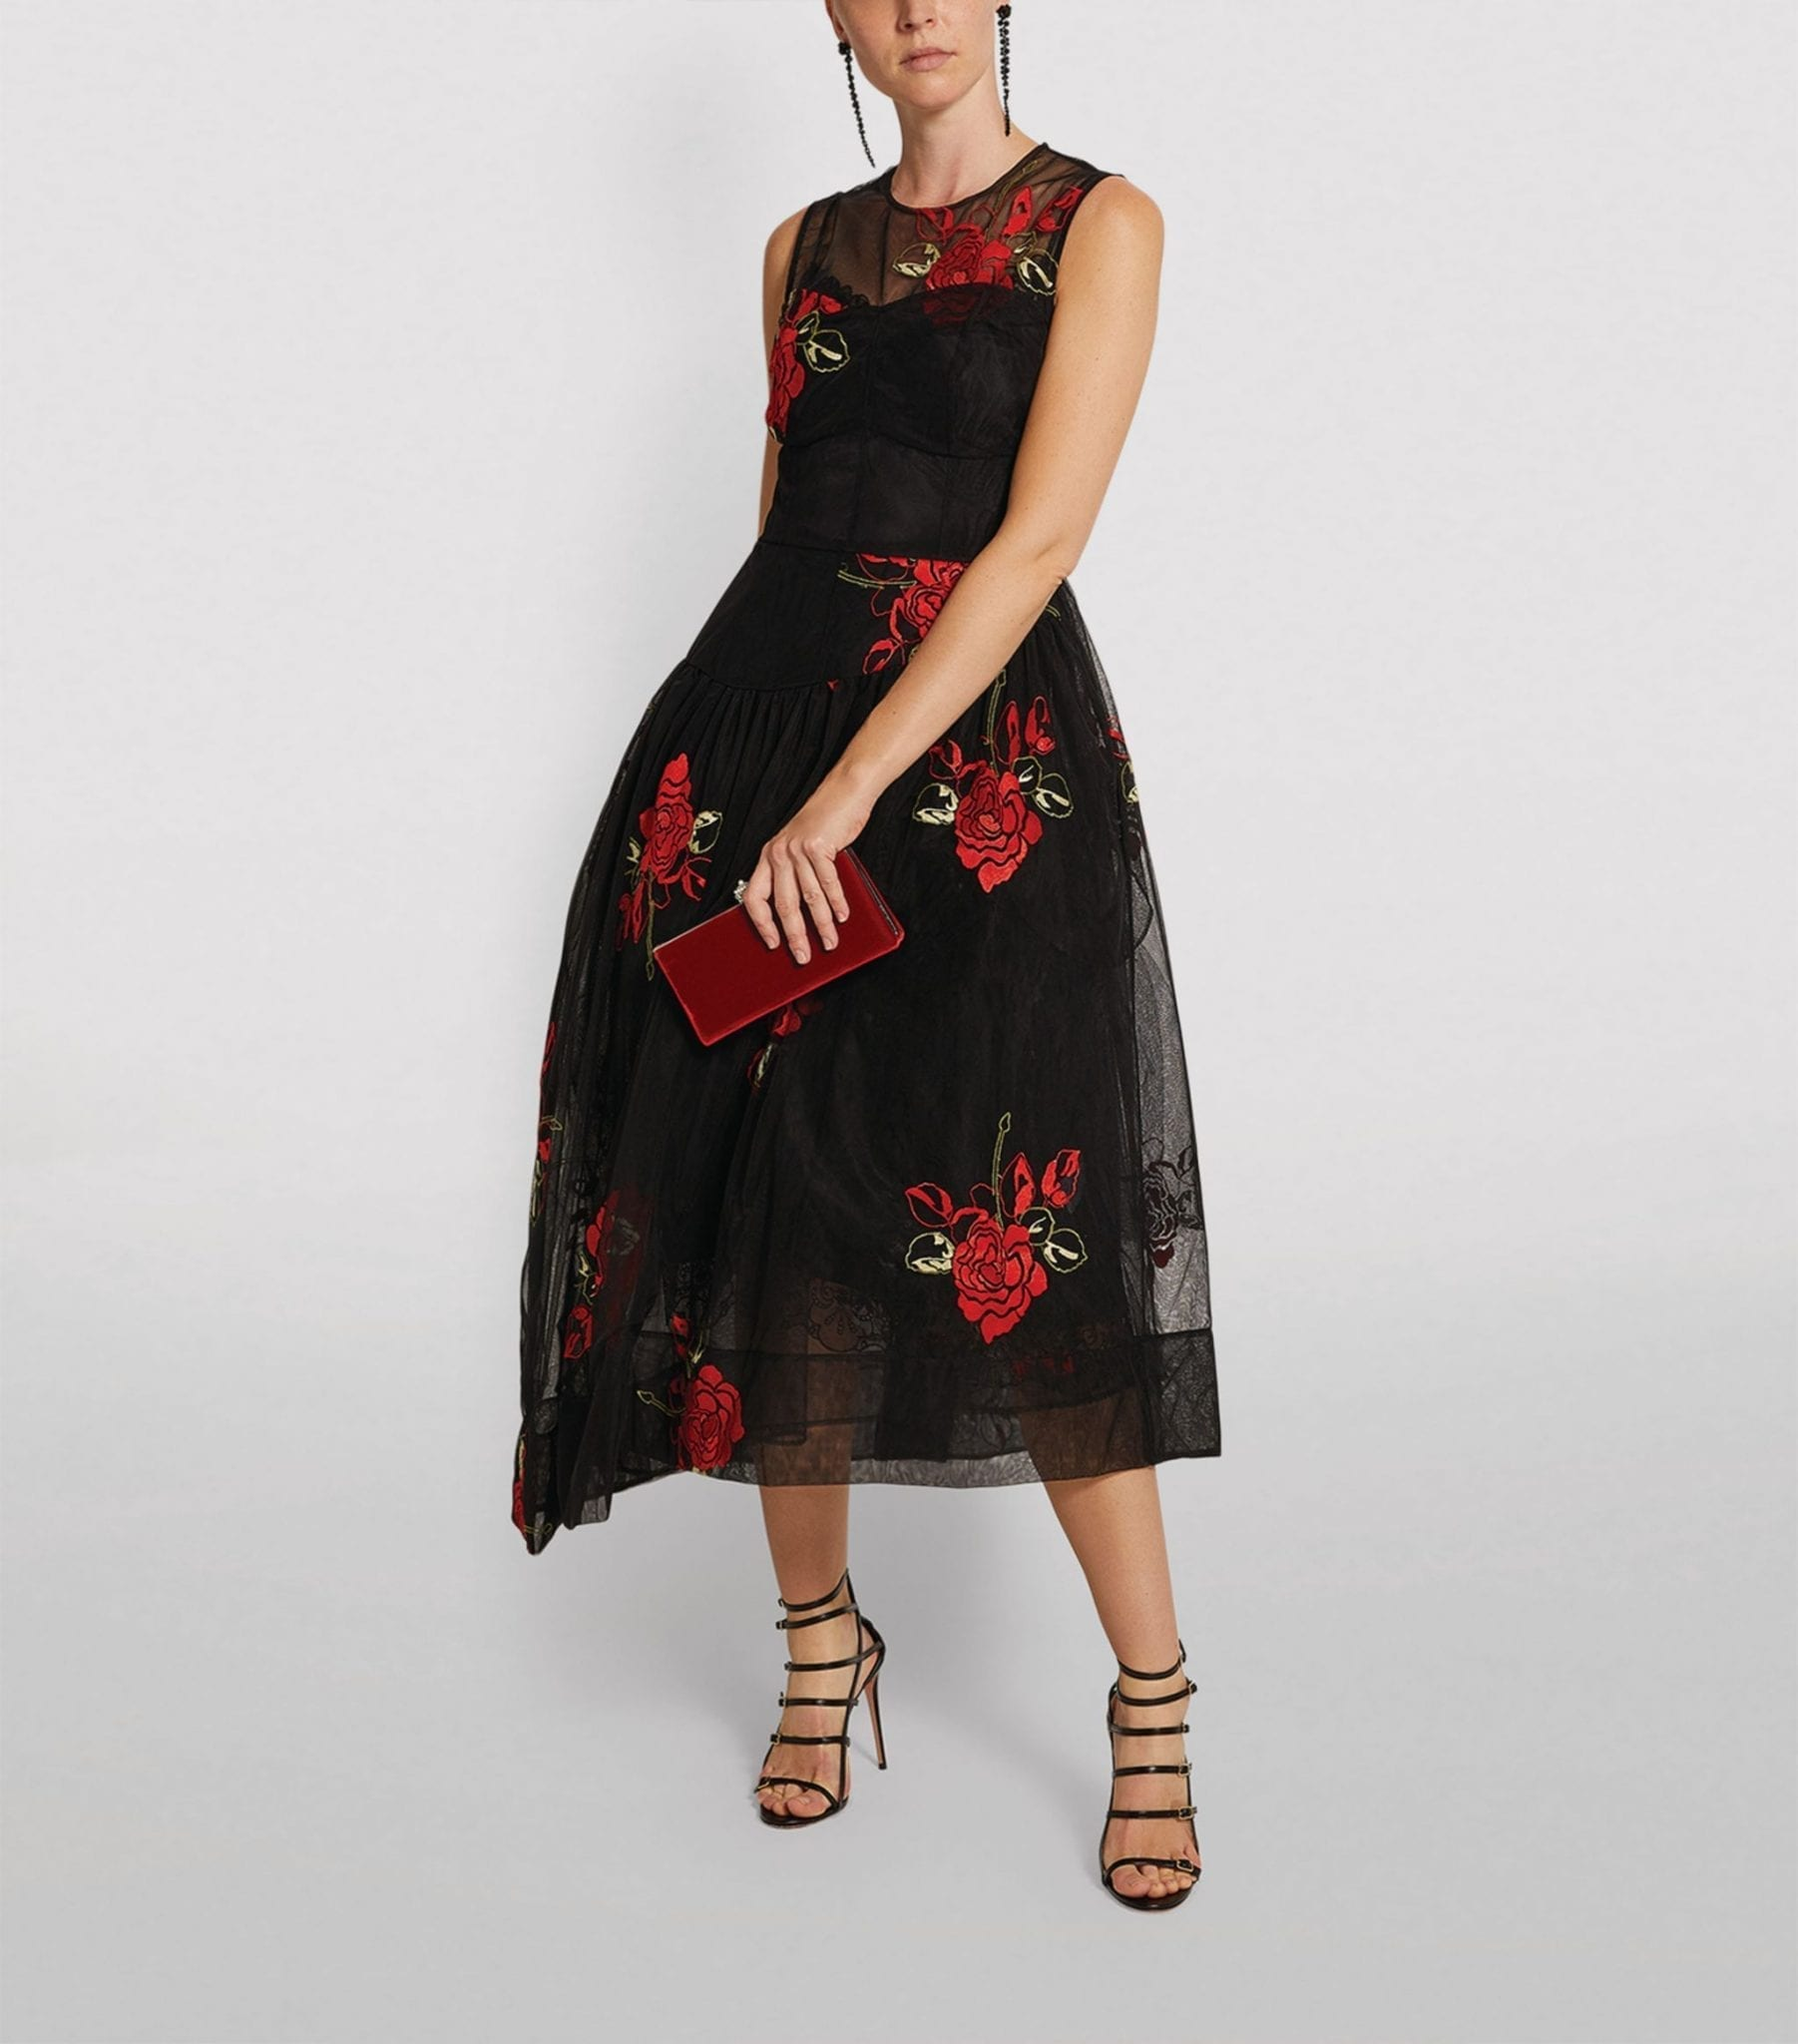 SIMONE ROCHA Embroidered Asymmetric Midi Dress